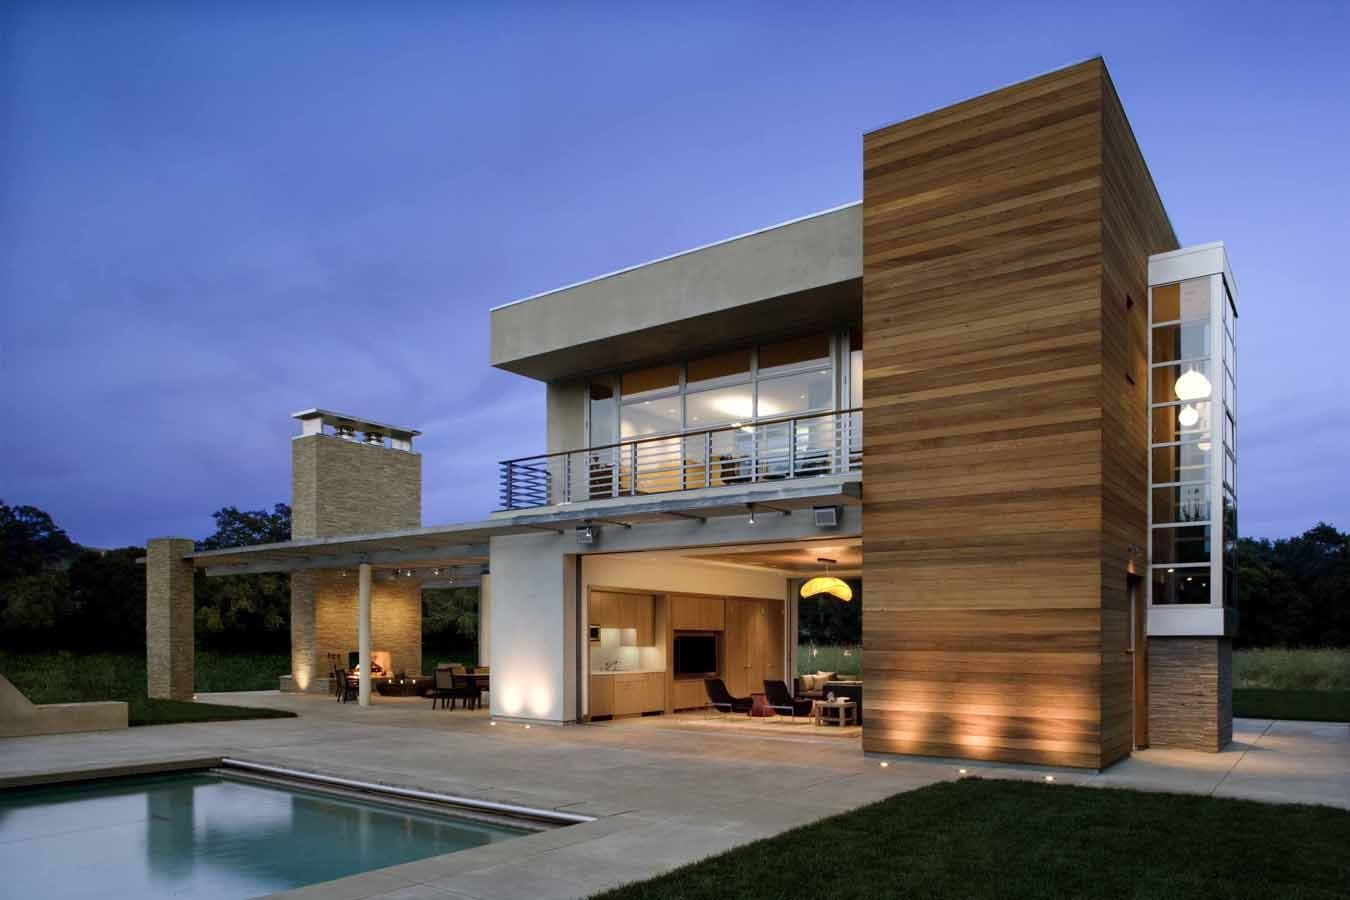 fancy house beach house architecture modern. Black Bedroom Furniture Sets. Home Design Ideas